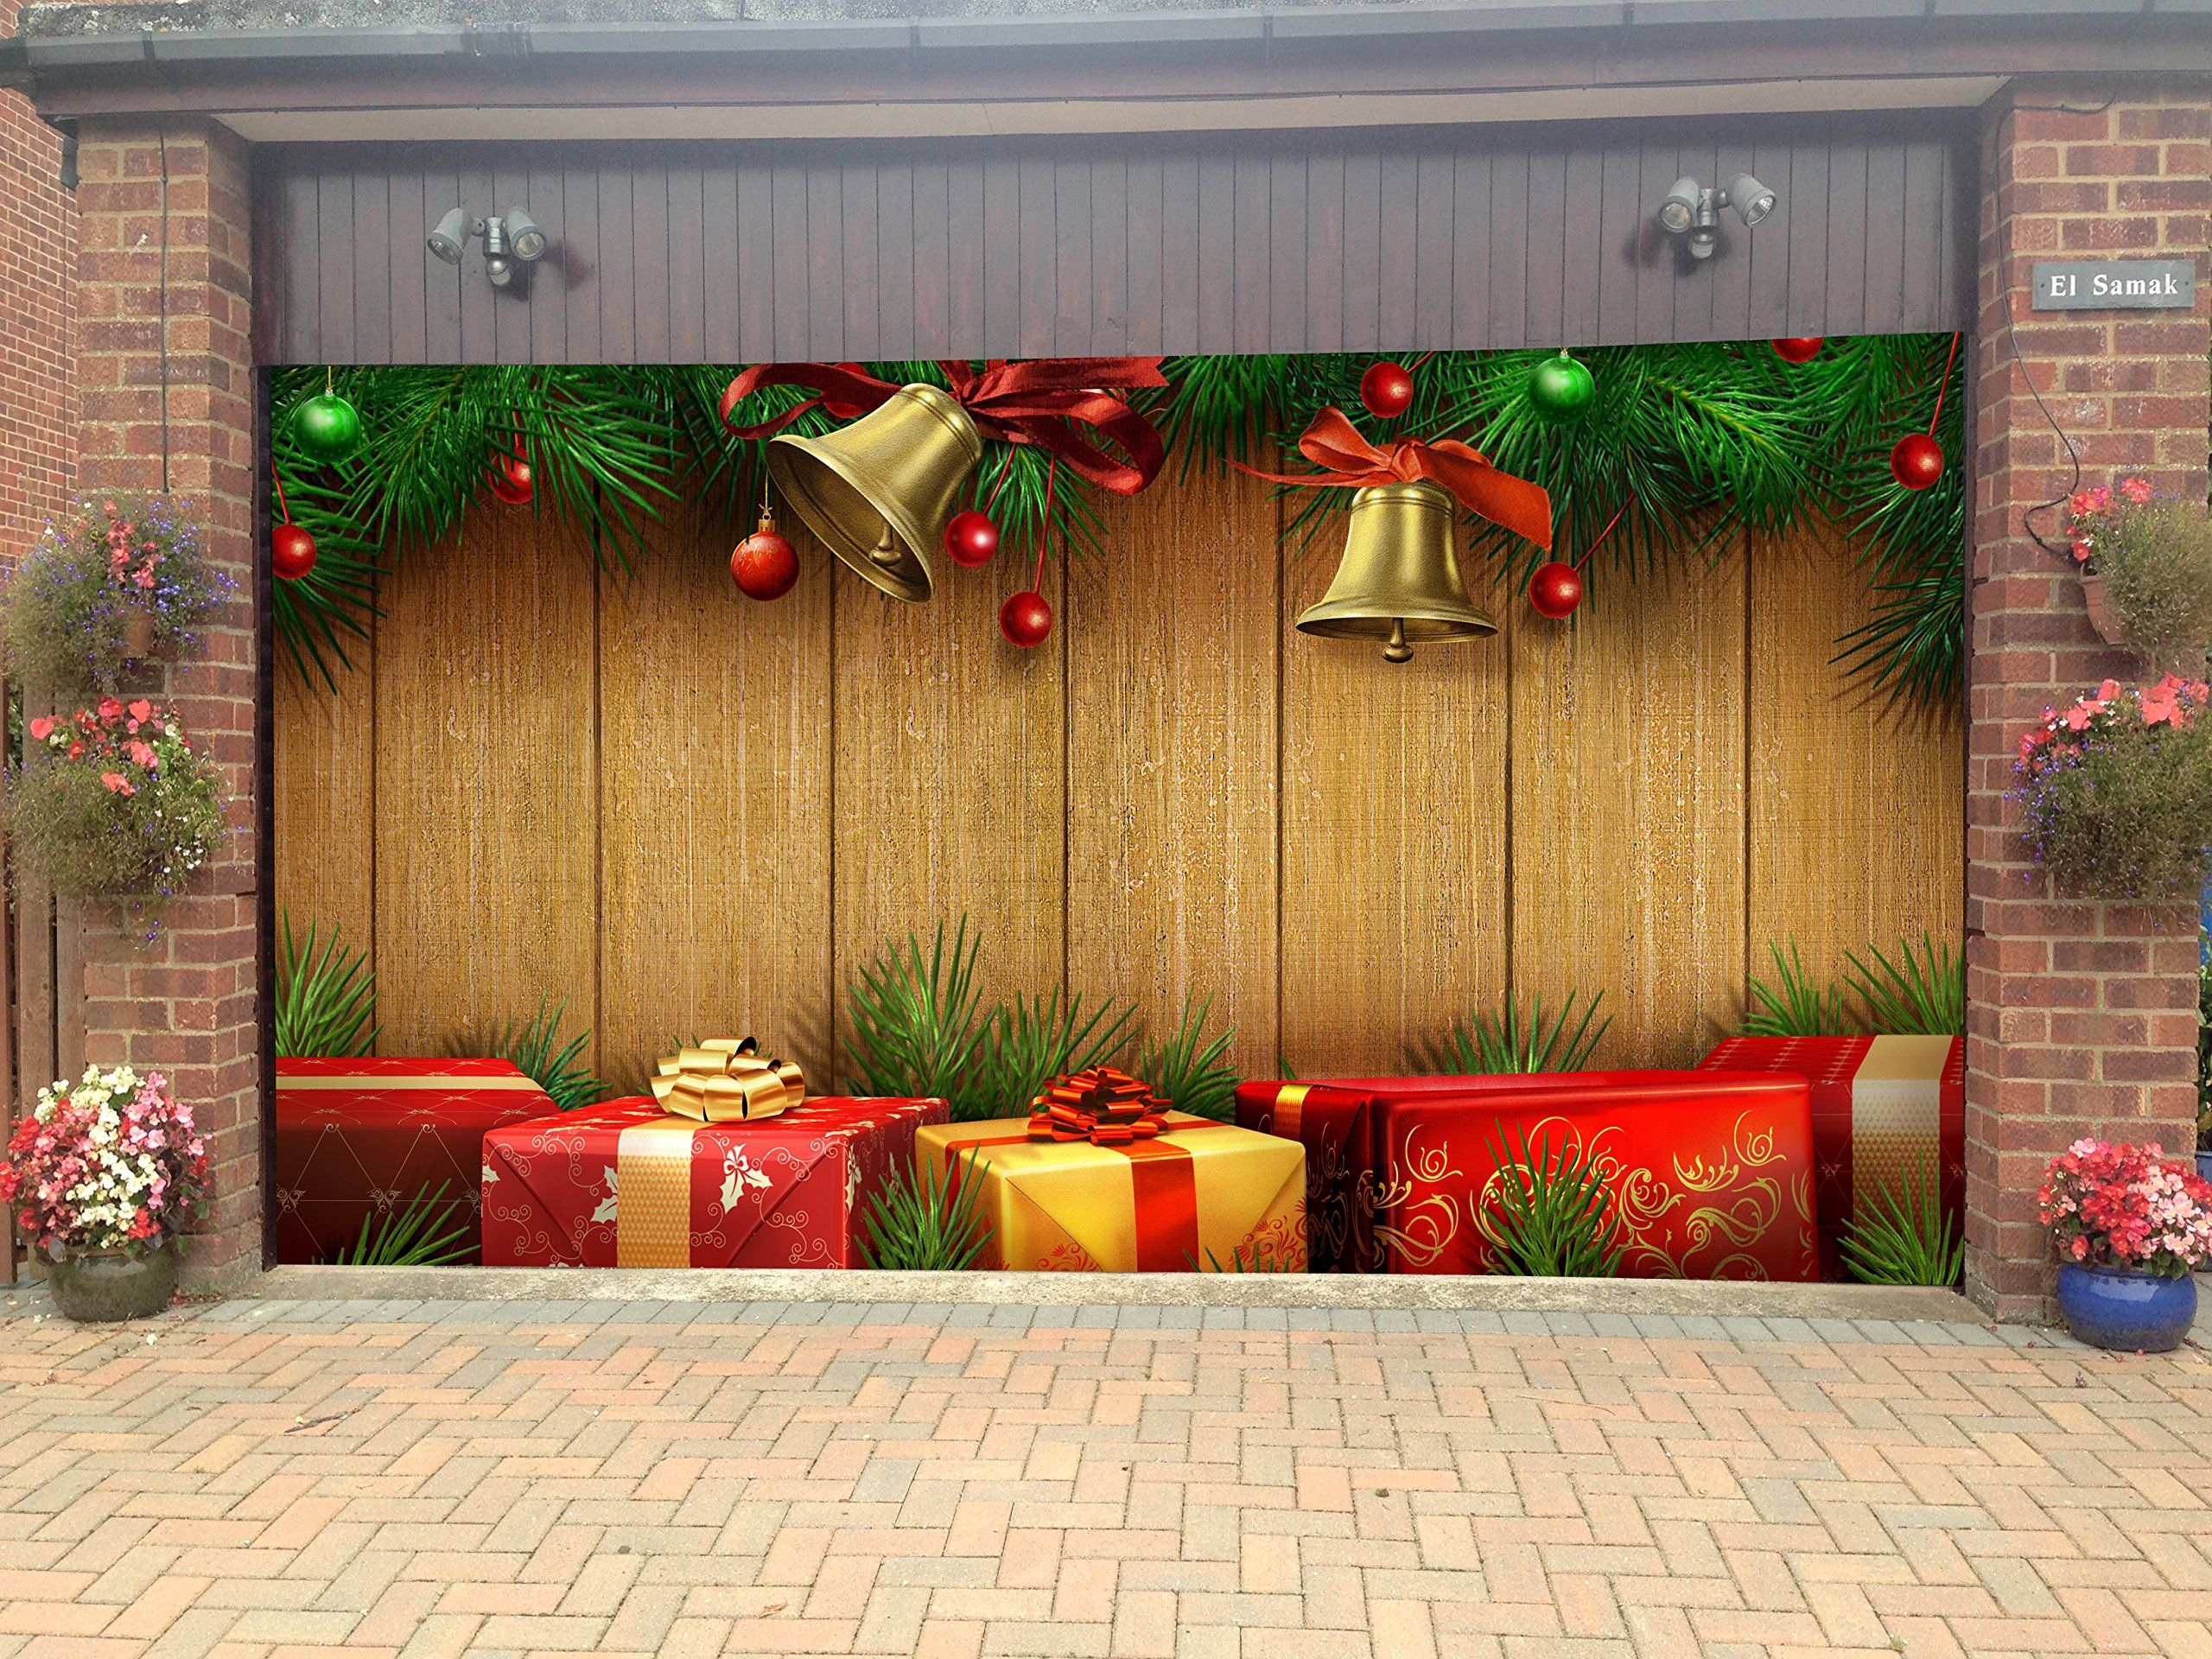 Garage door christmas decorating ideas - Merry Christmas Garage Door Covers 3d Banners Holiday Tree Decorations Outdoor Billboard Murals Gd56